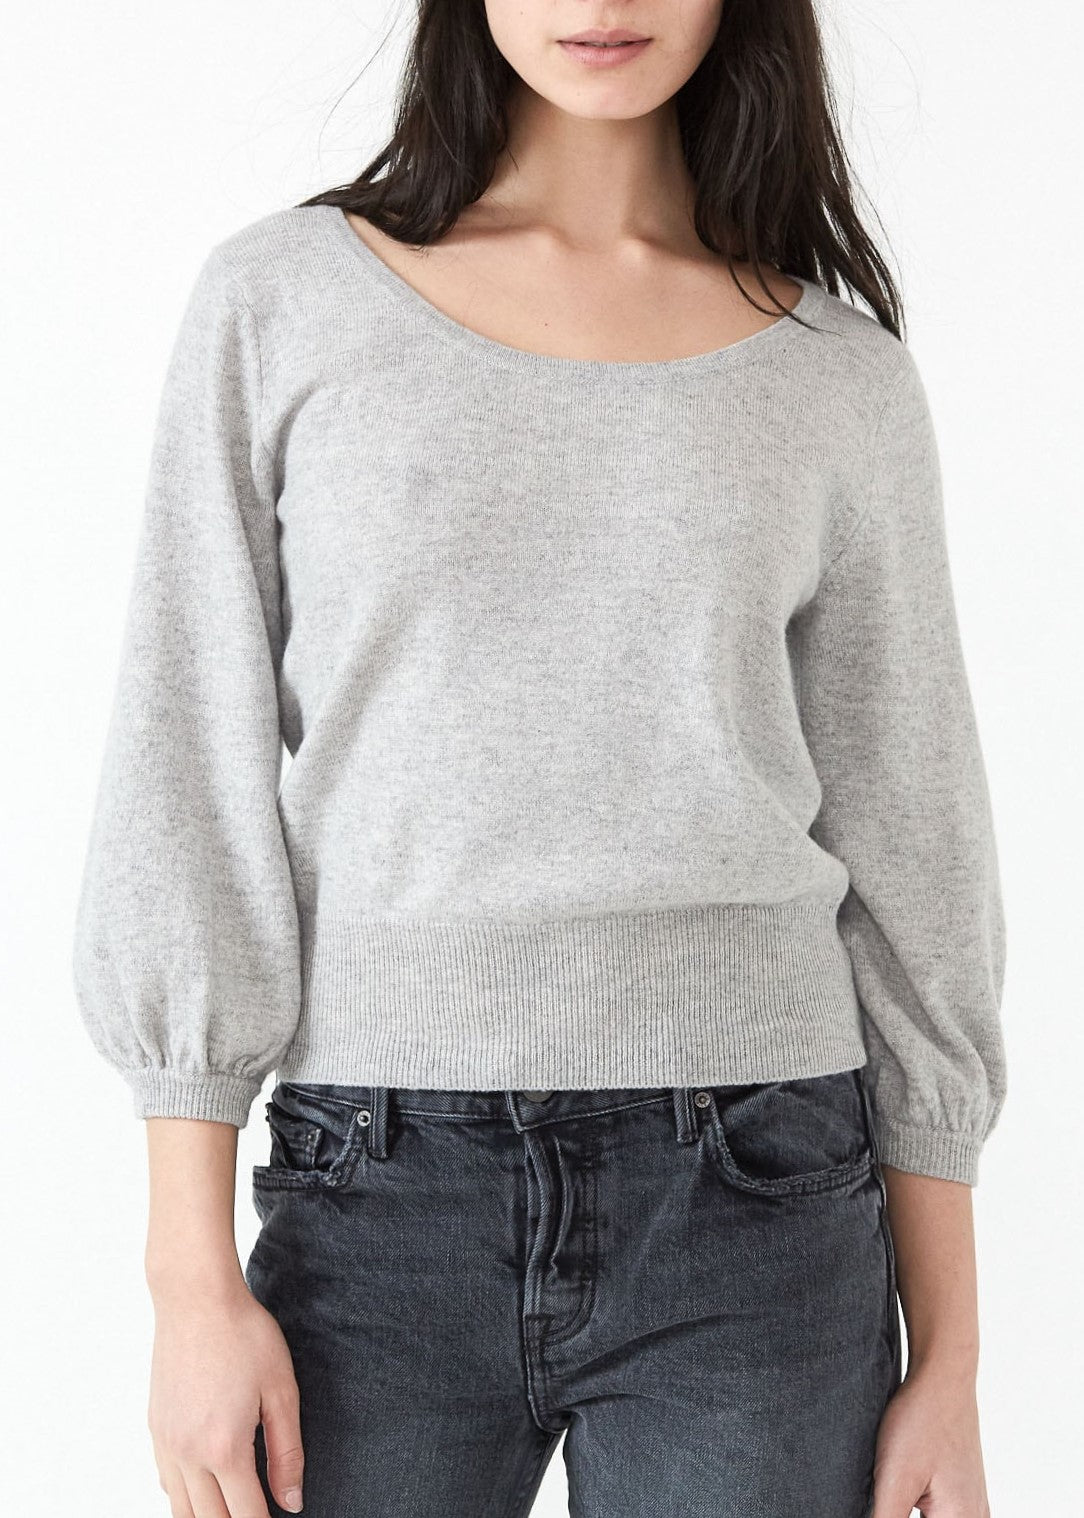 Demylee Janelle sweater in light heather grey